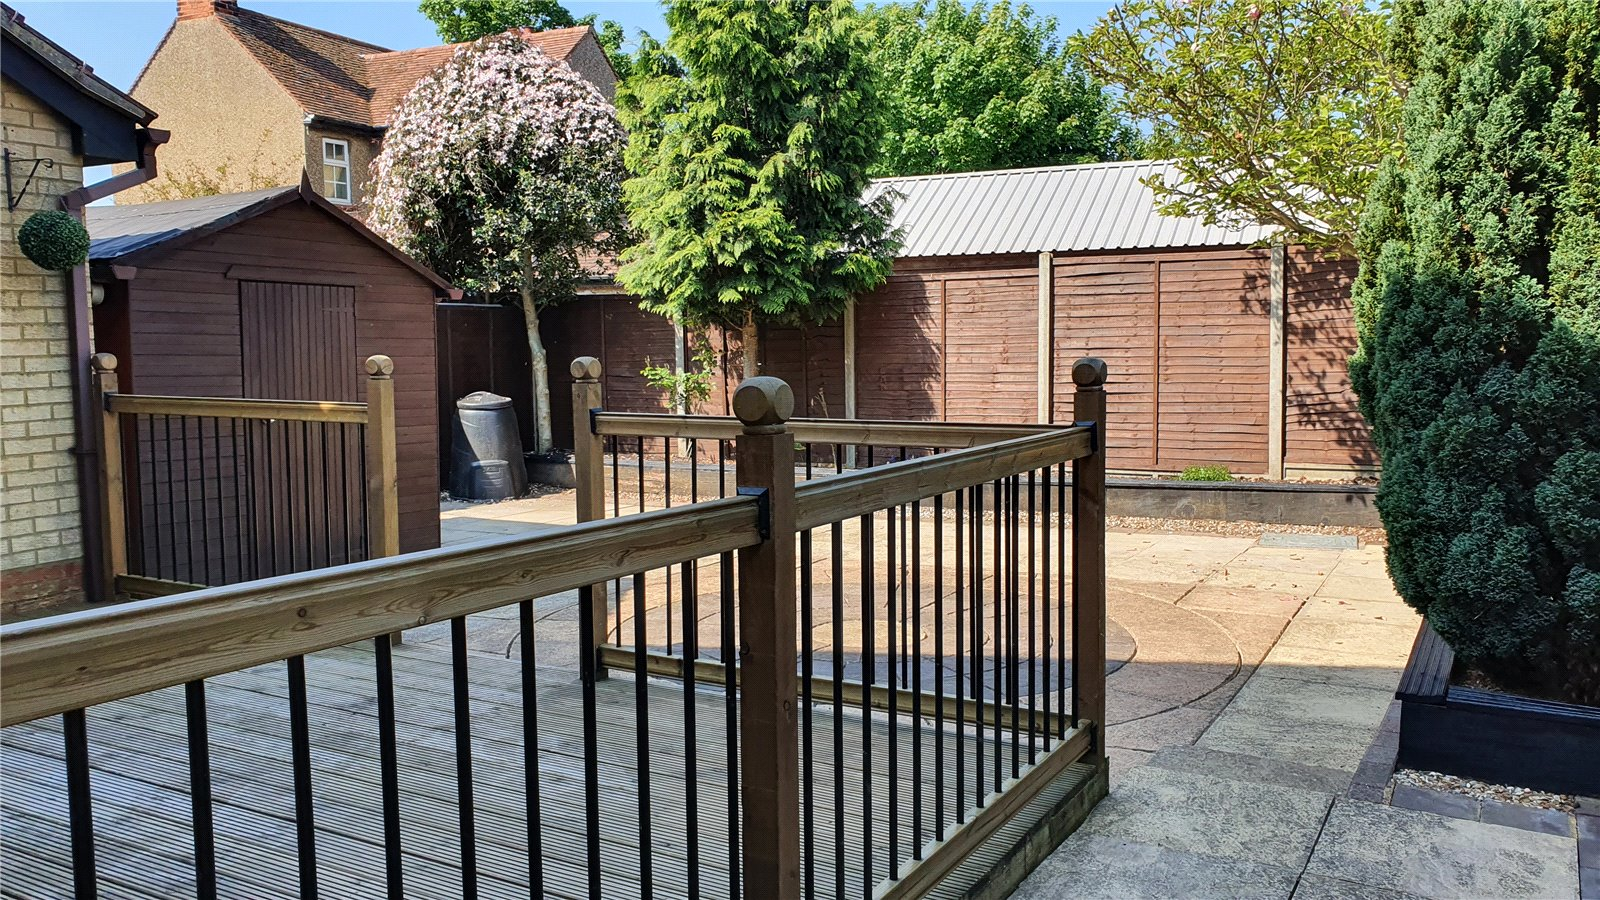 3 bed house for sale in Farm Close, Wyboston  - Property Image 9